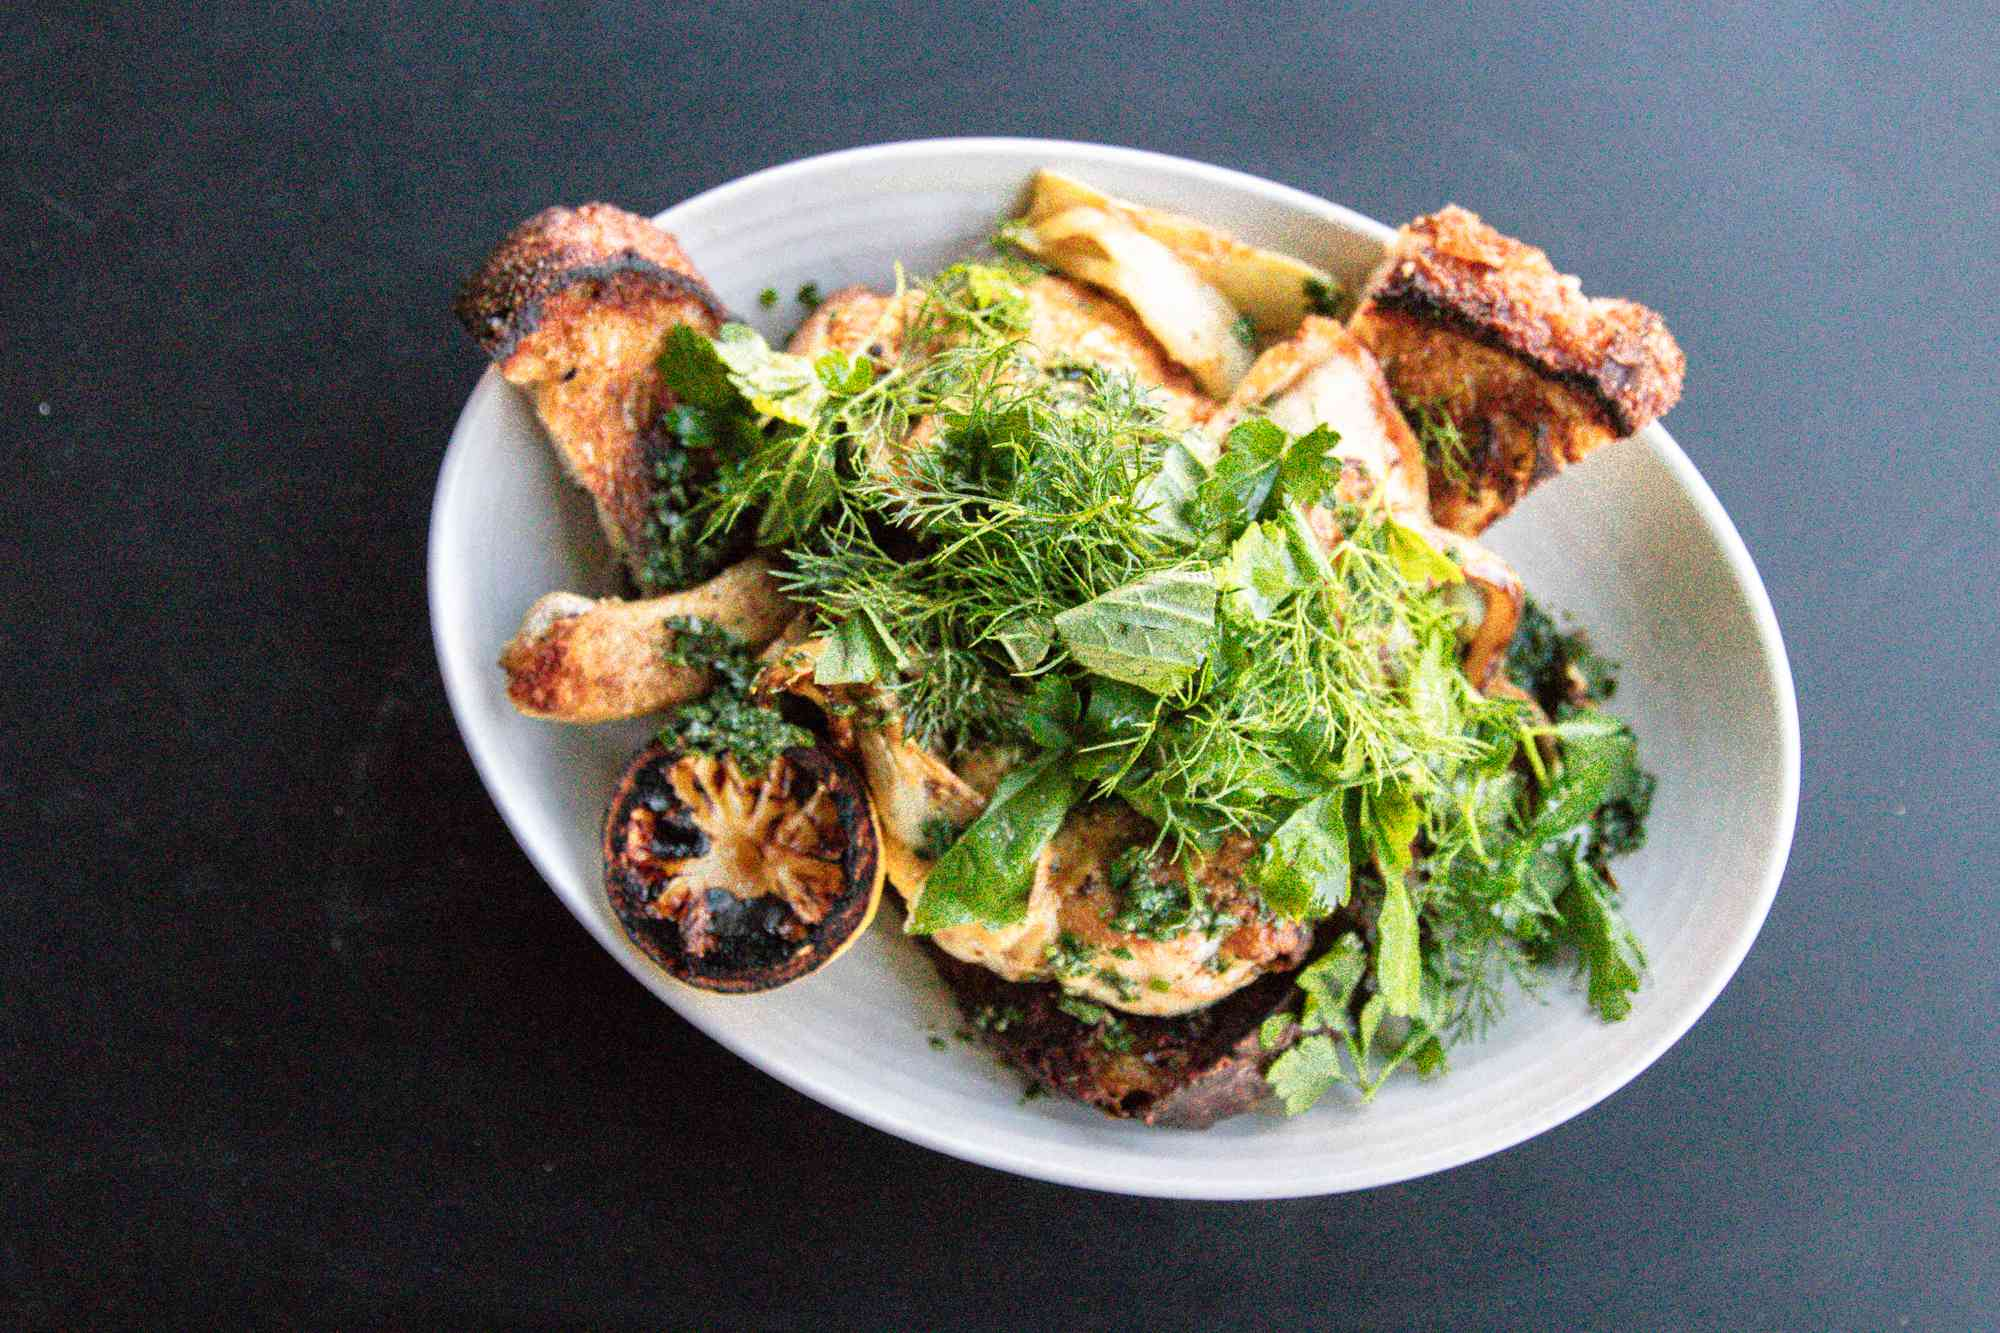 Toast and chicken garnished with greens from High Street on Hudson